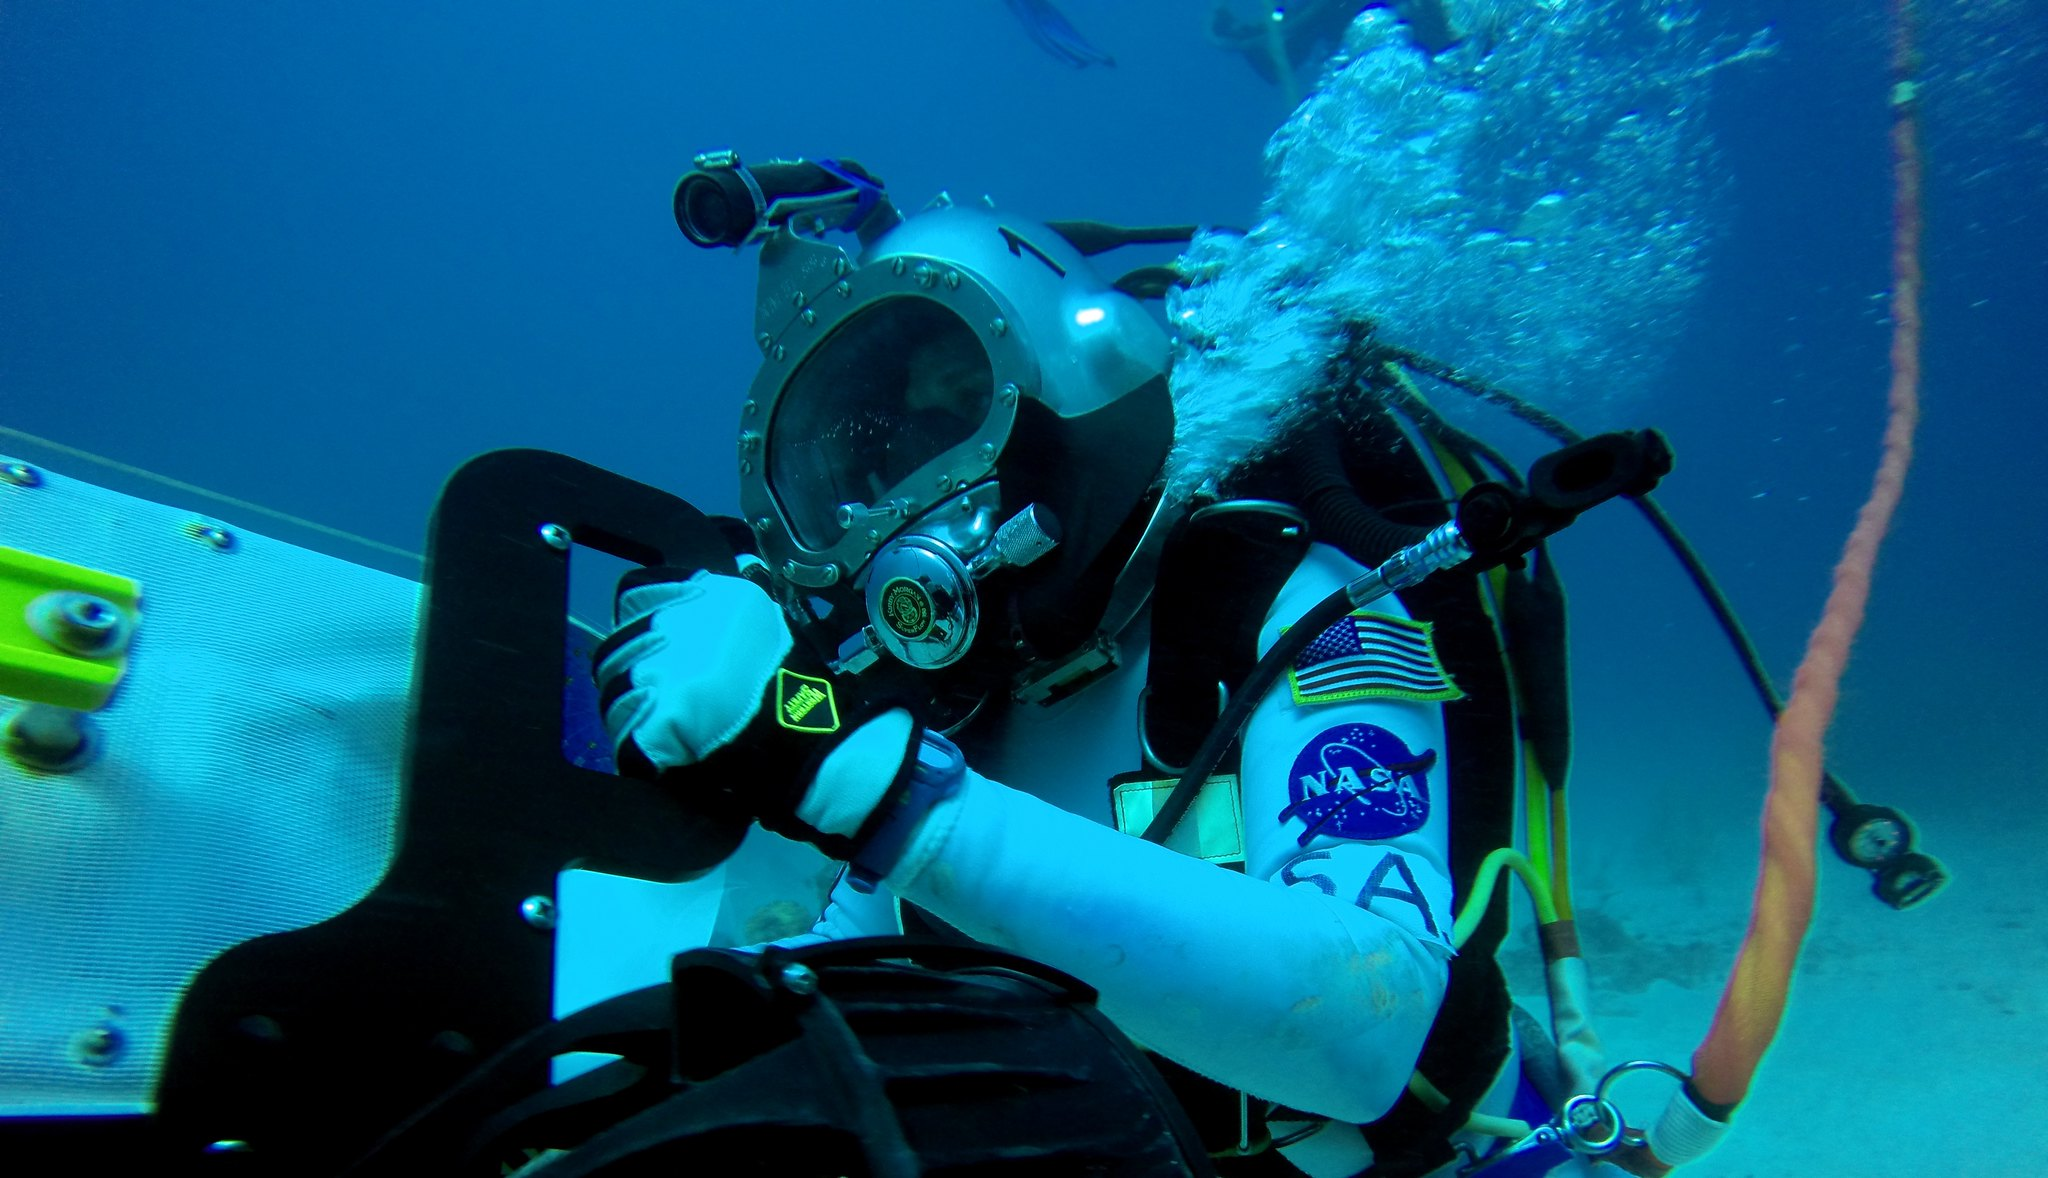 NEEMO Undersea Crew Tests Tools and Techniques For Future Spacewalks